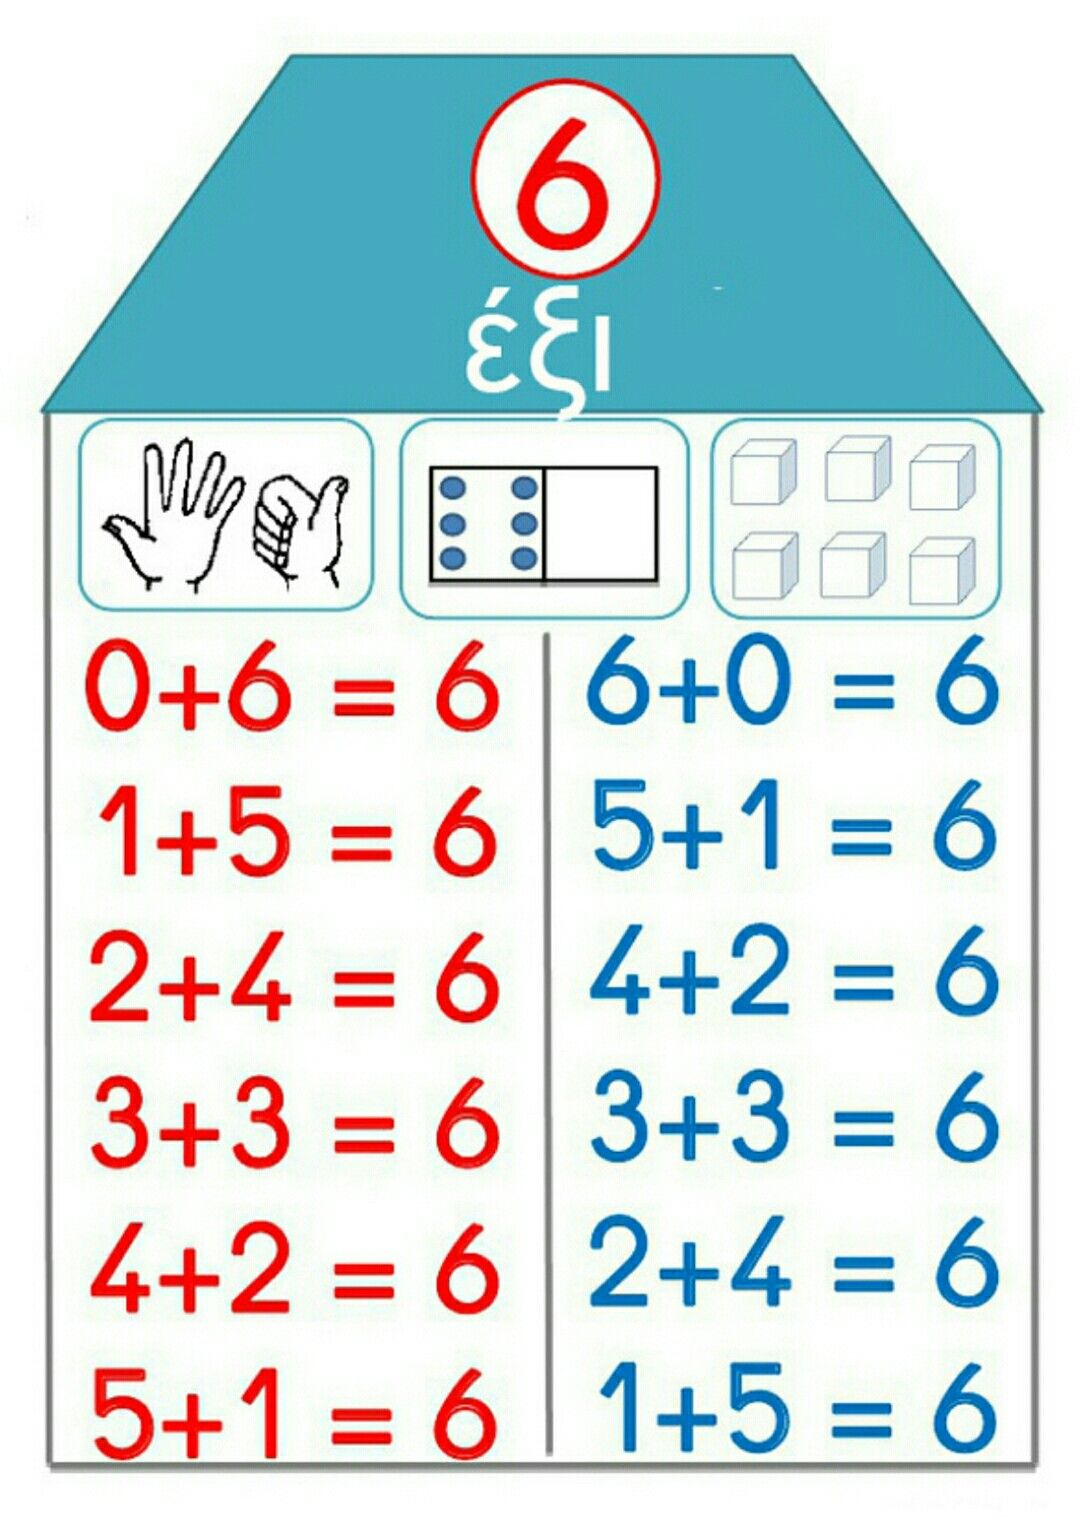 Pin by Lydia on Schools | Pinterest | Math, Math expressions and ...